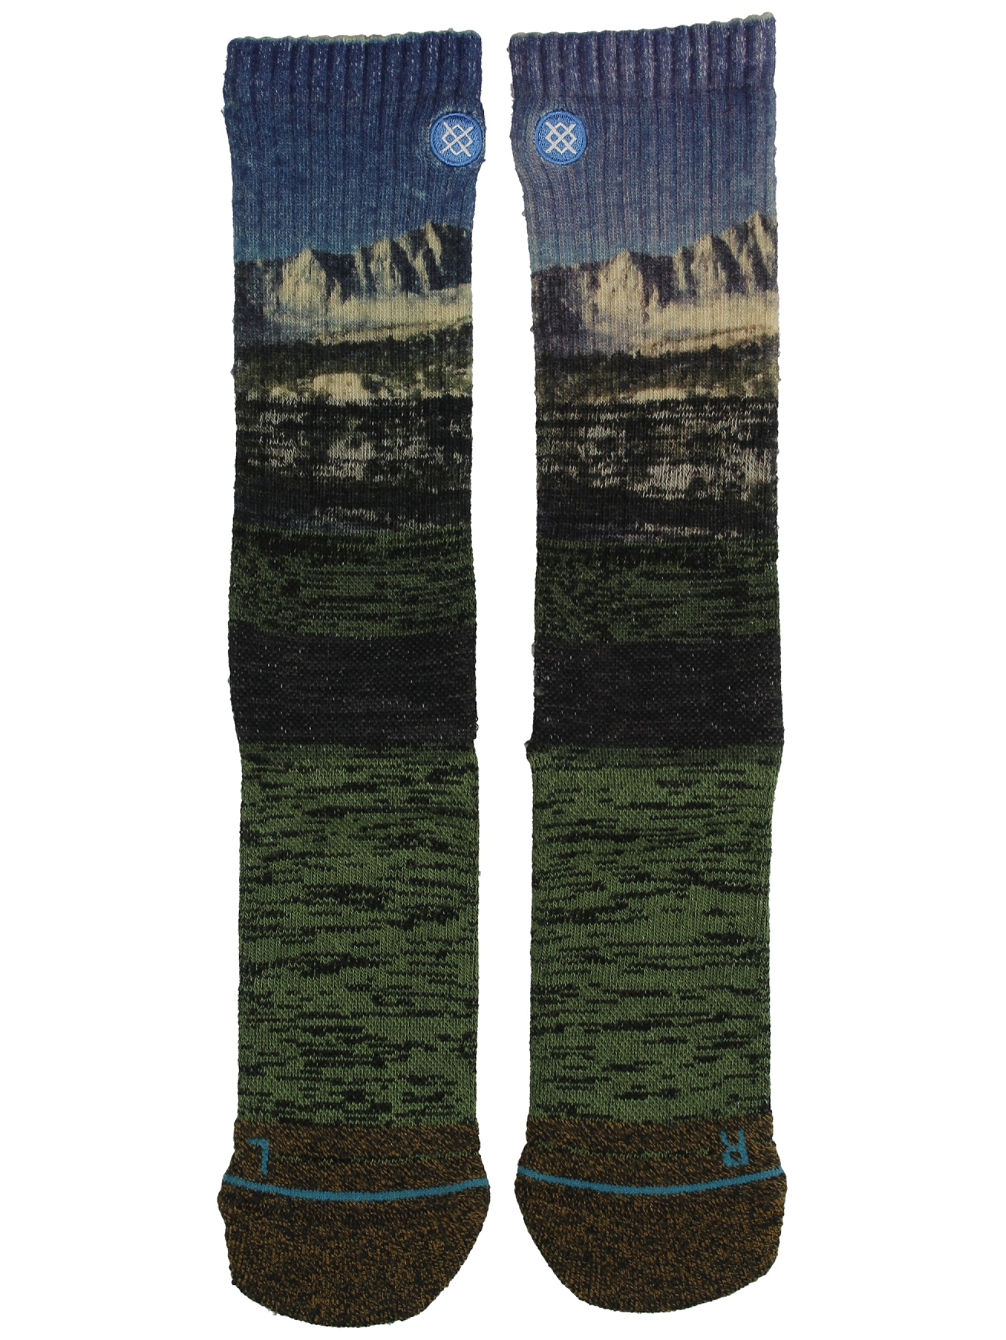 Little Lakes Outdoor Socks